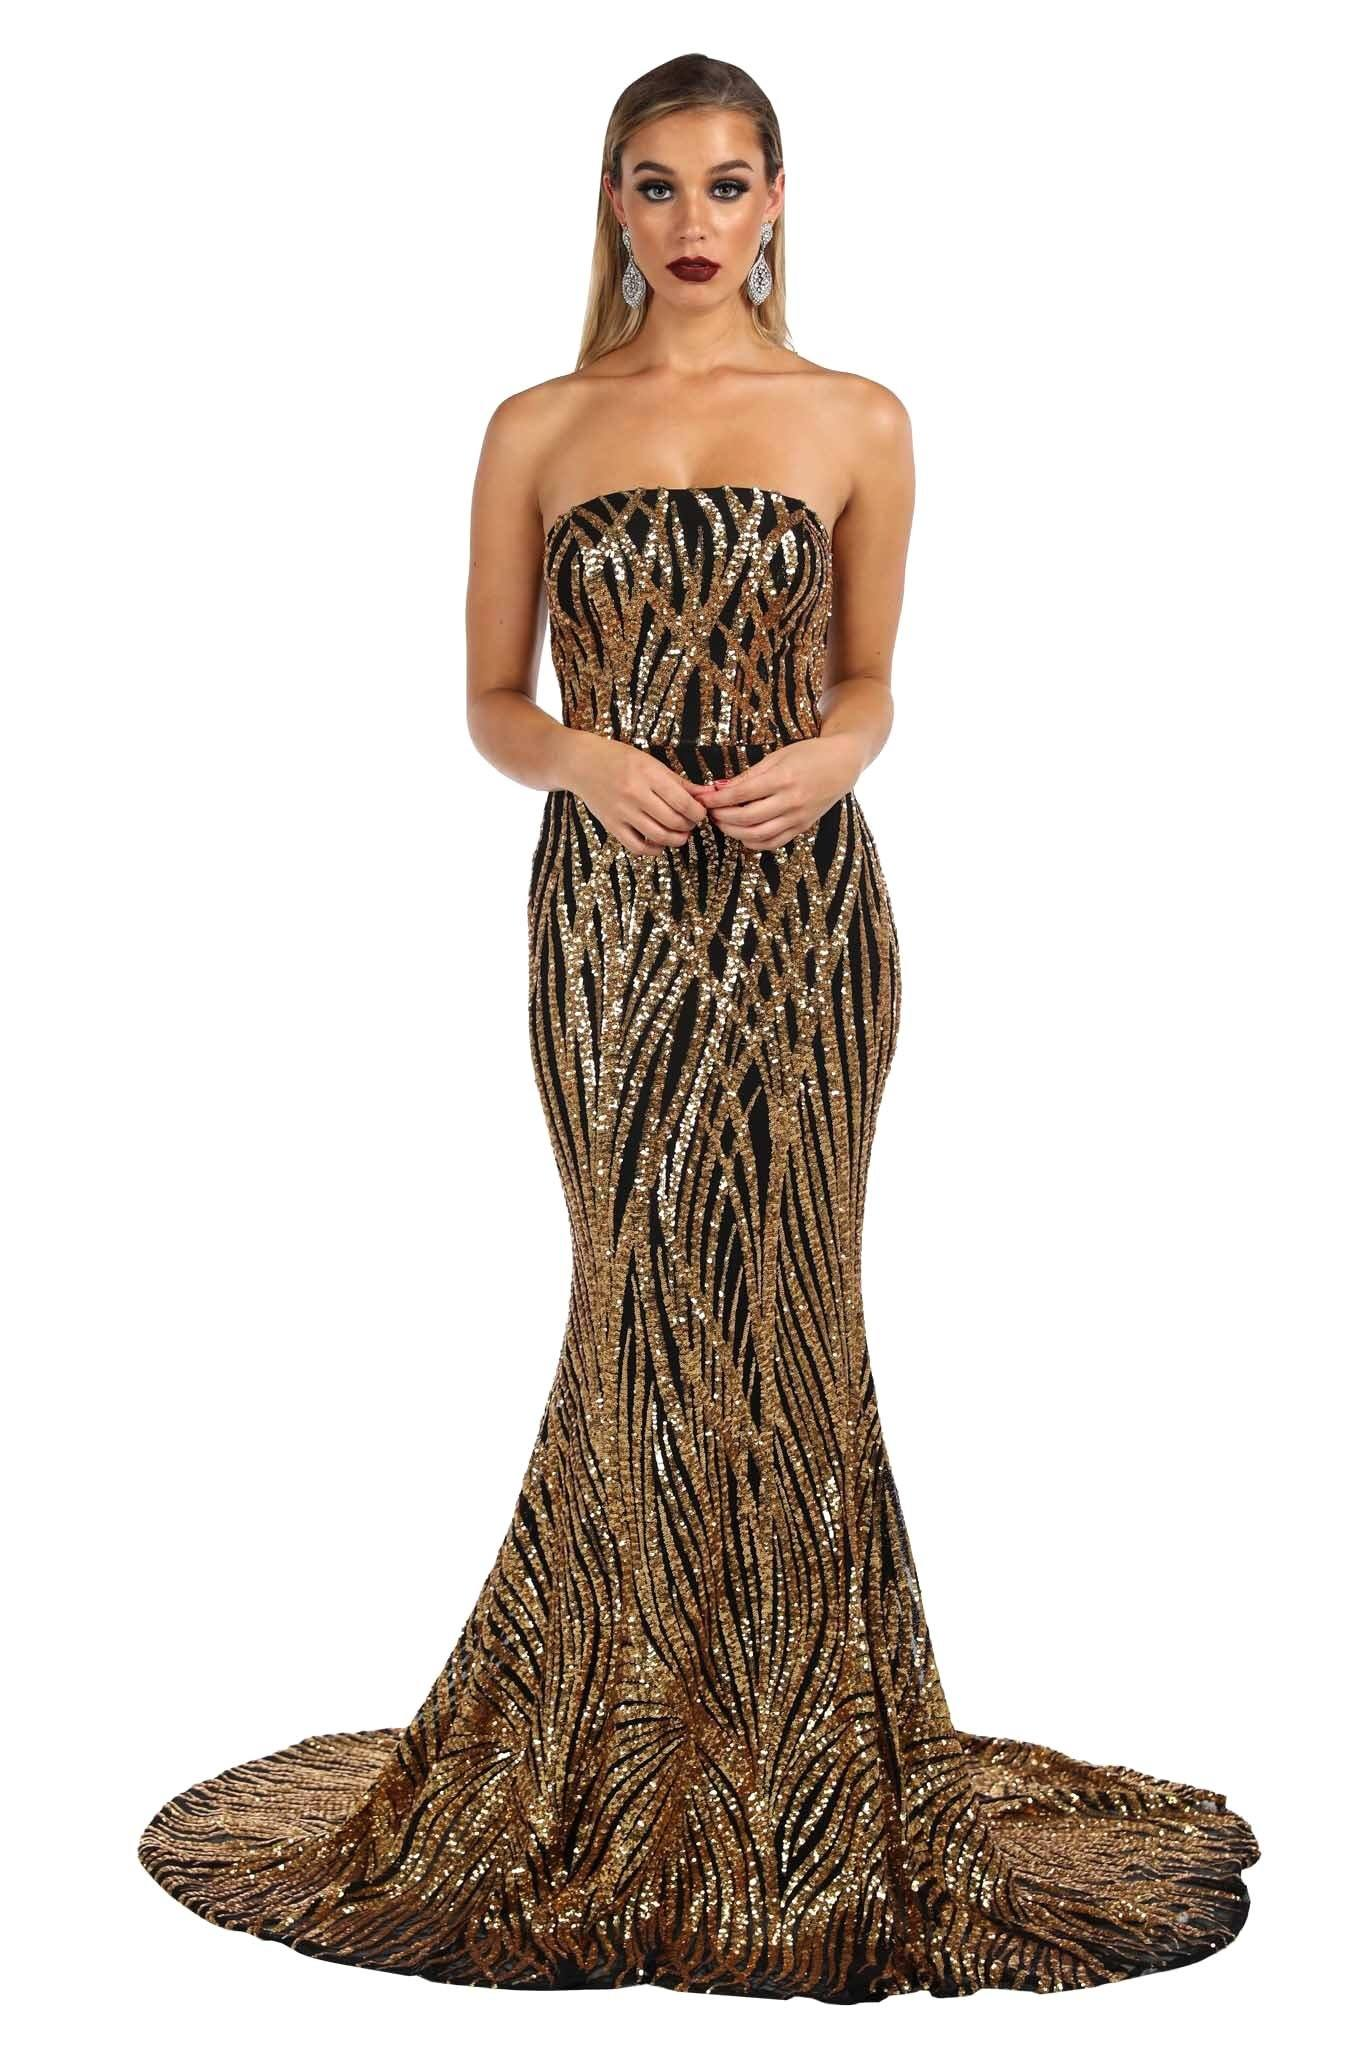 Gold and Black sequin prom formal long gown features strapless straight neckline, fishtail and long train design